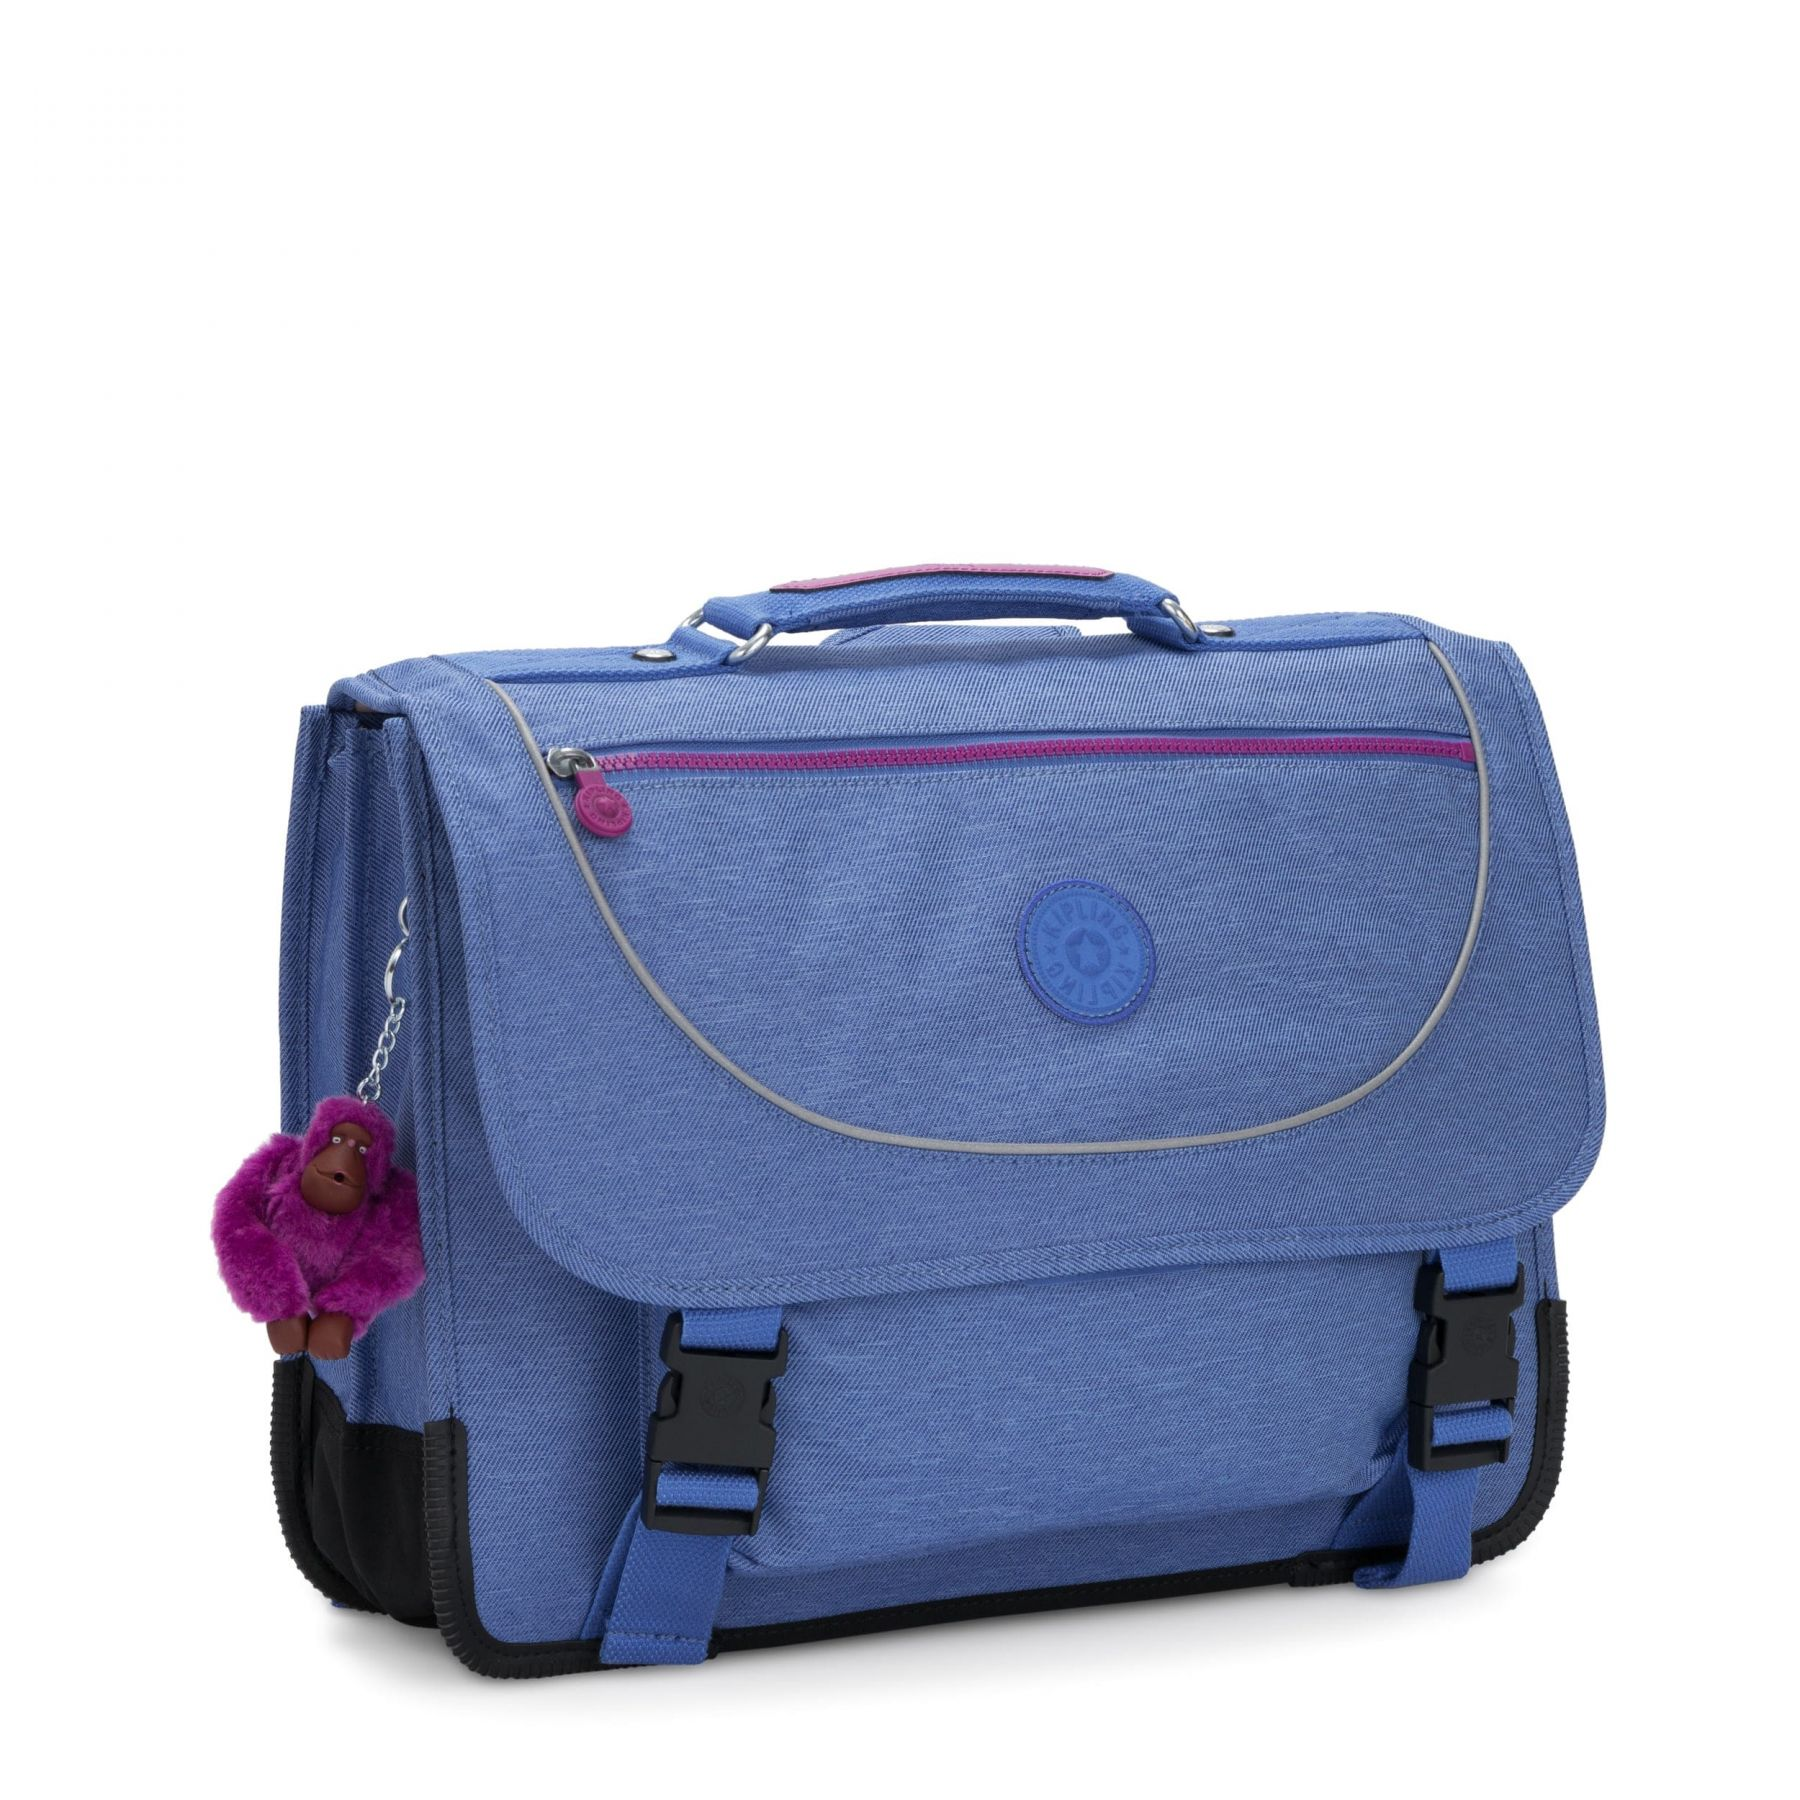 PREPPY SCHOOL BAGS by Kipling